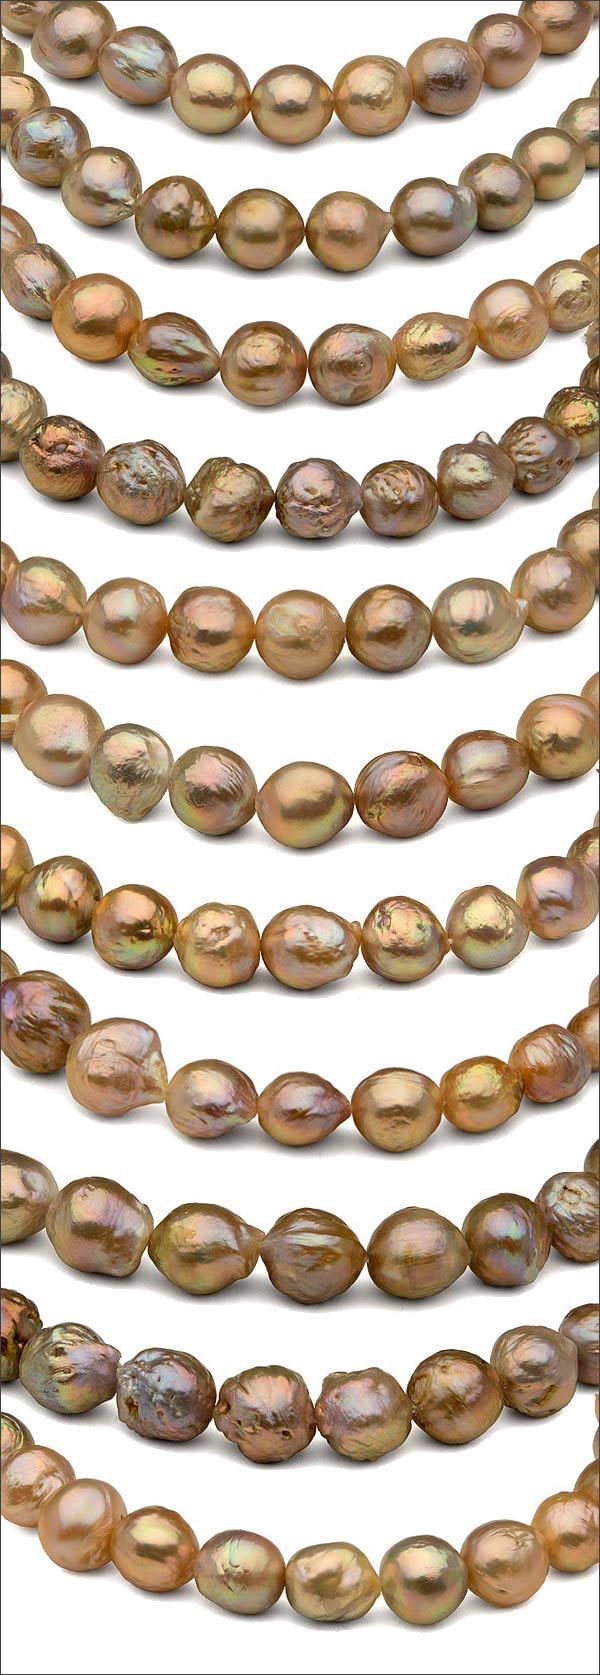 new freshwater ripple pearl necklaces